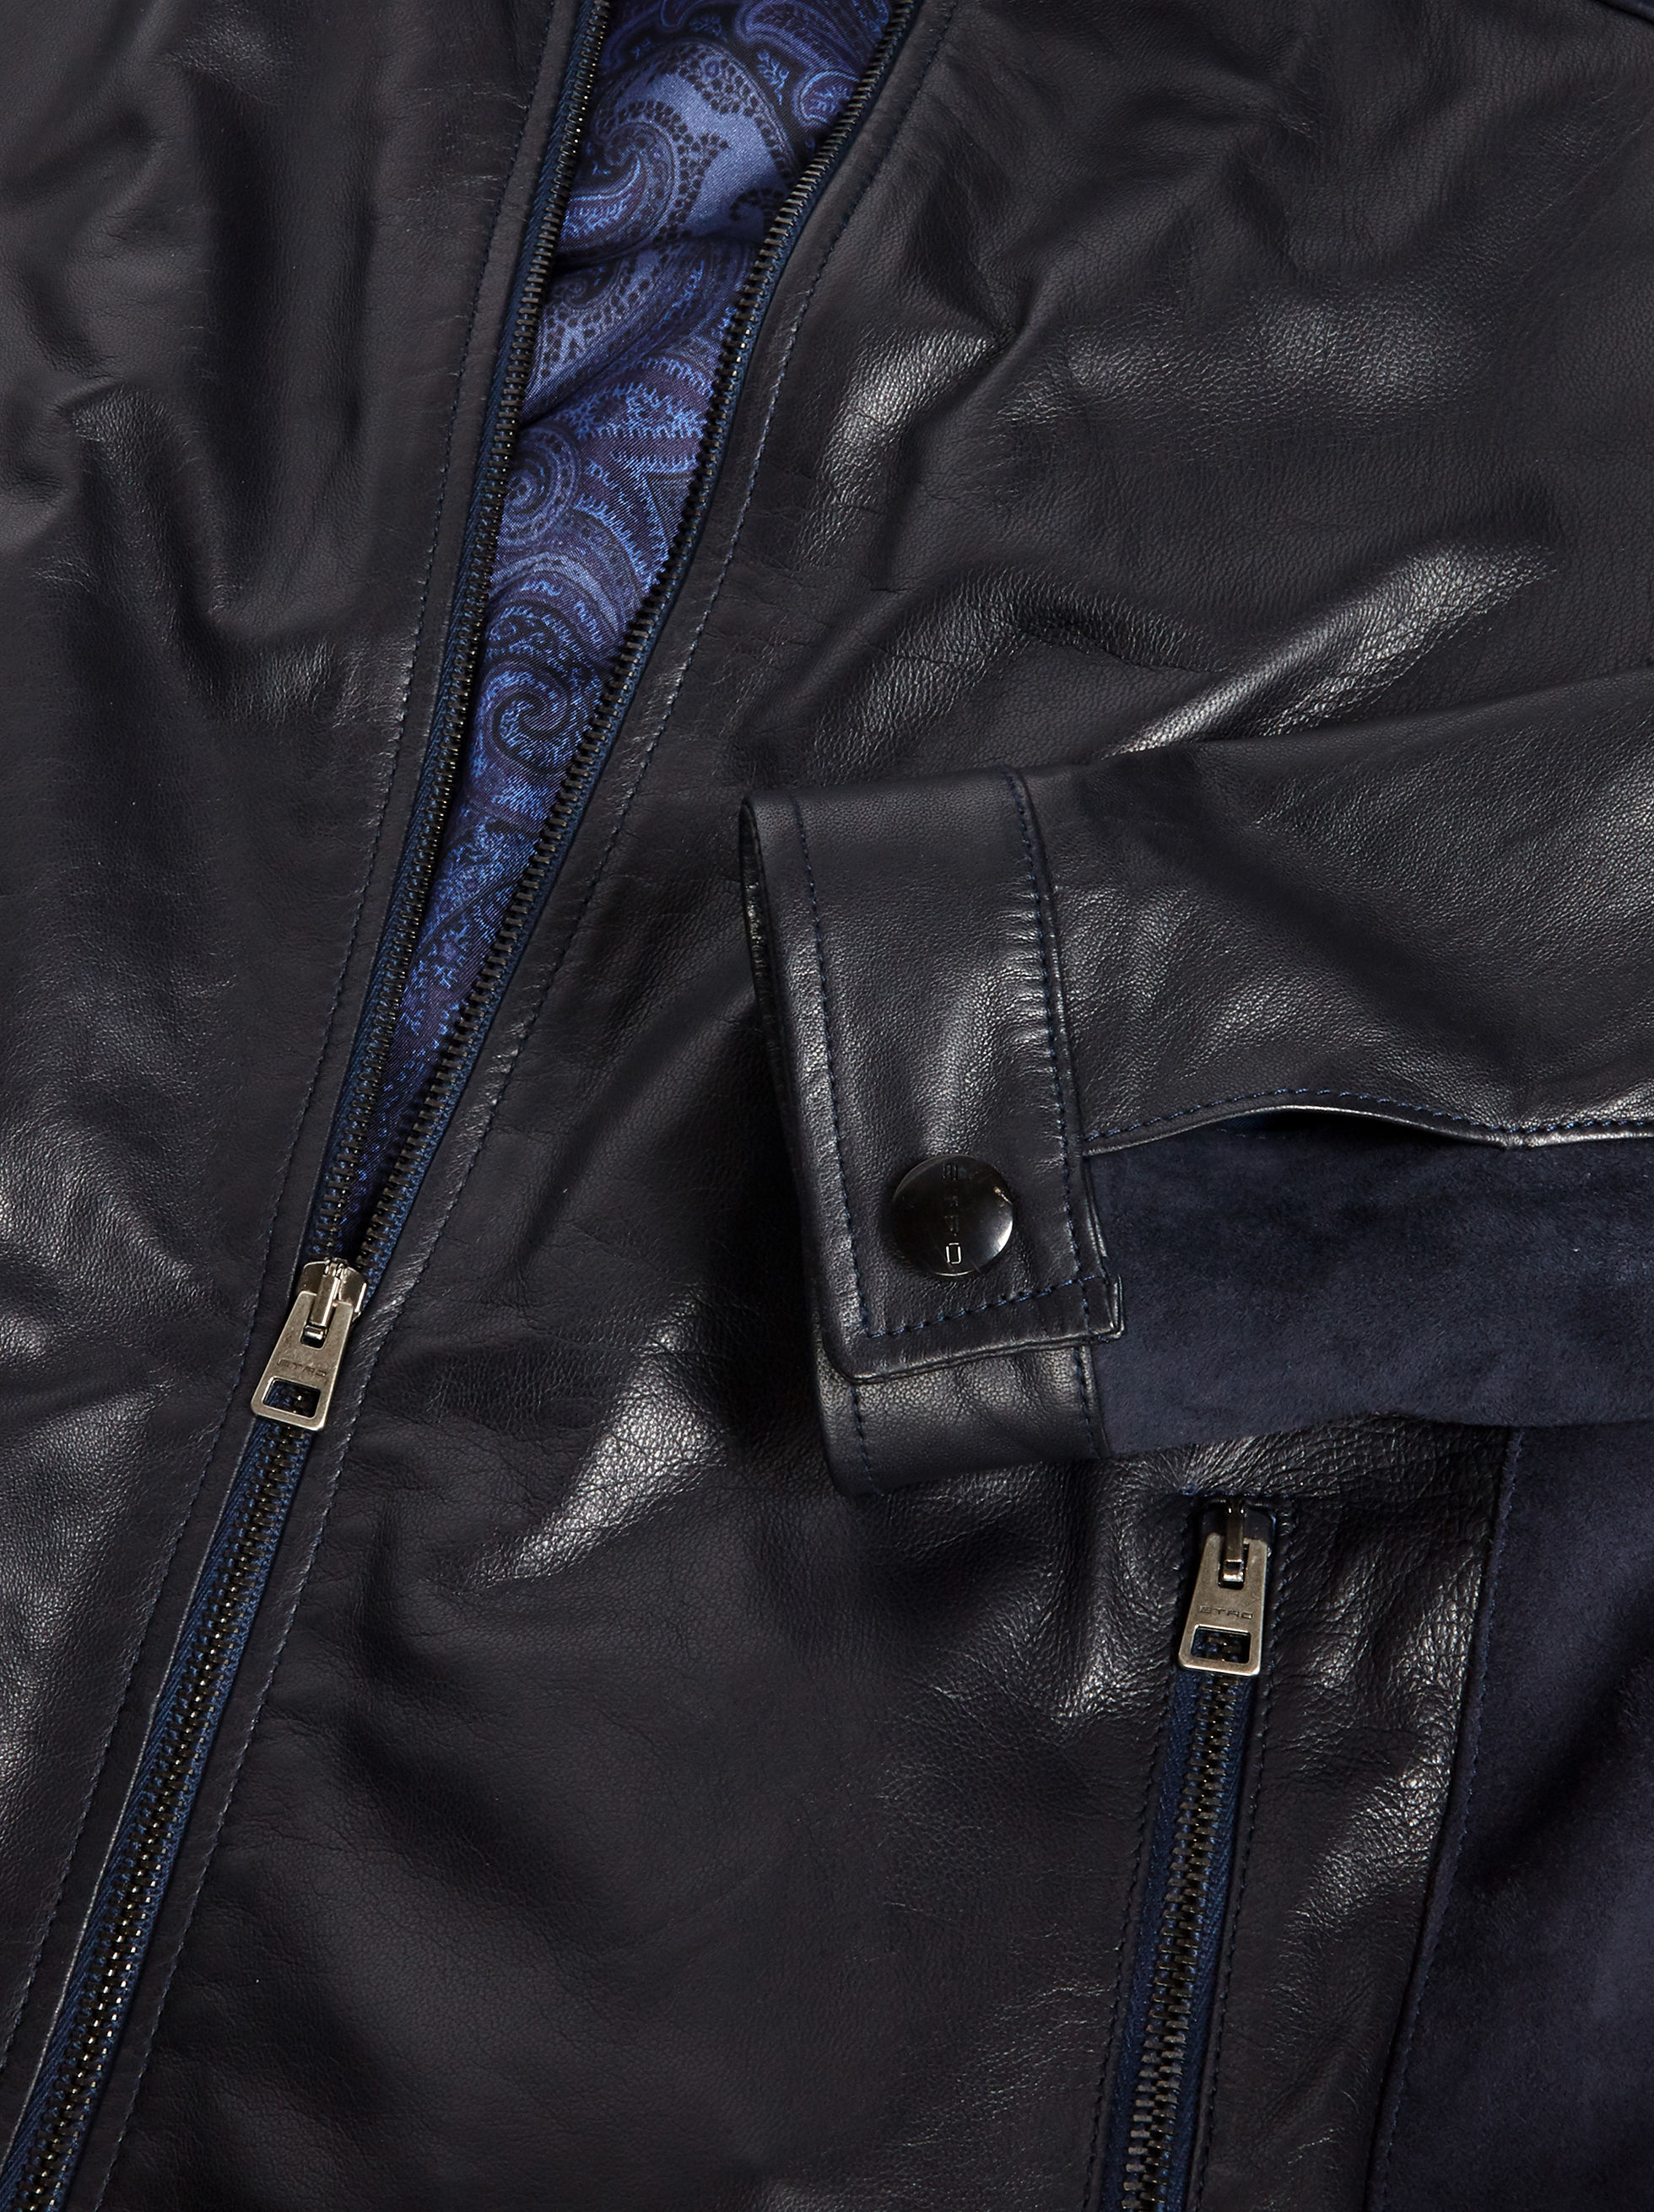 NAPPA LEATHER AND SUEDE BIKER JACKET